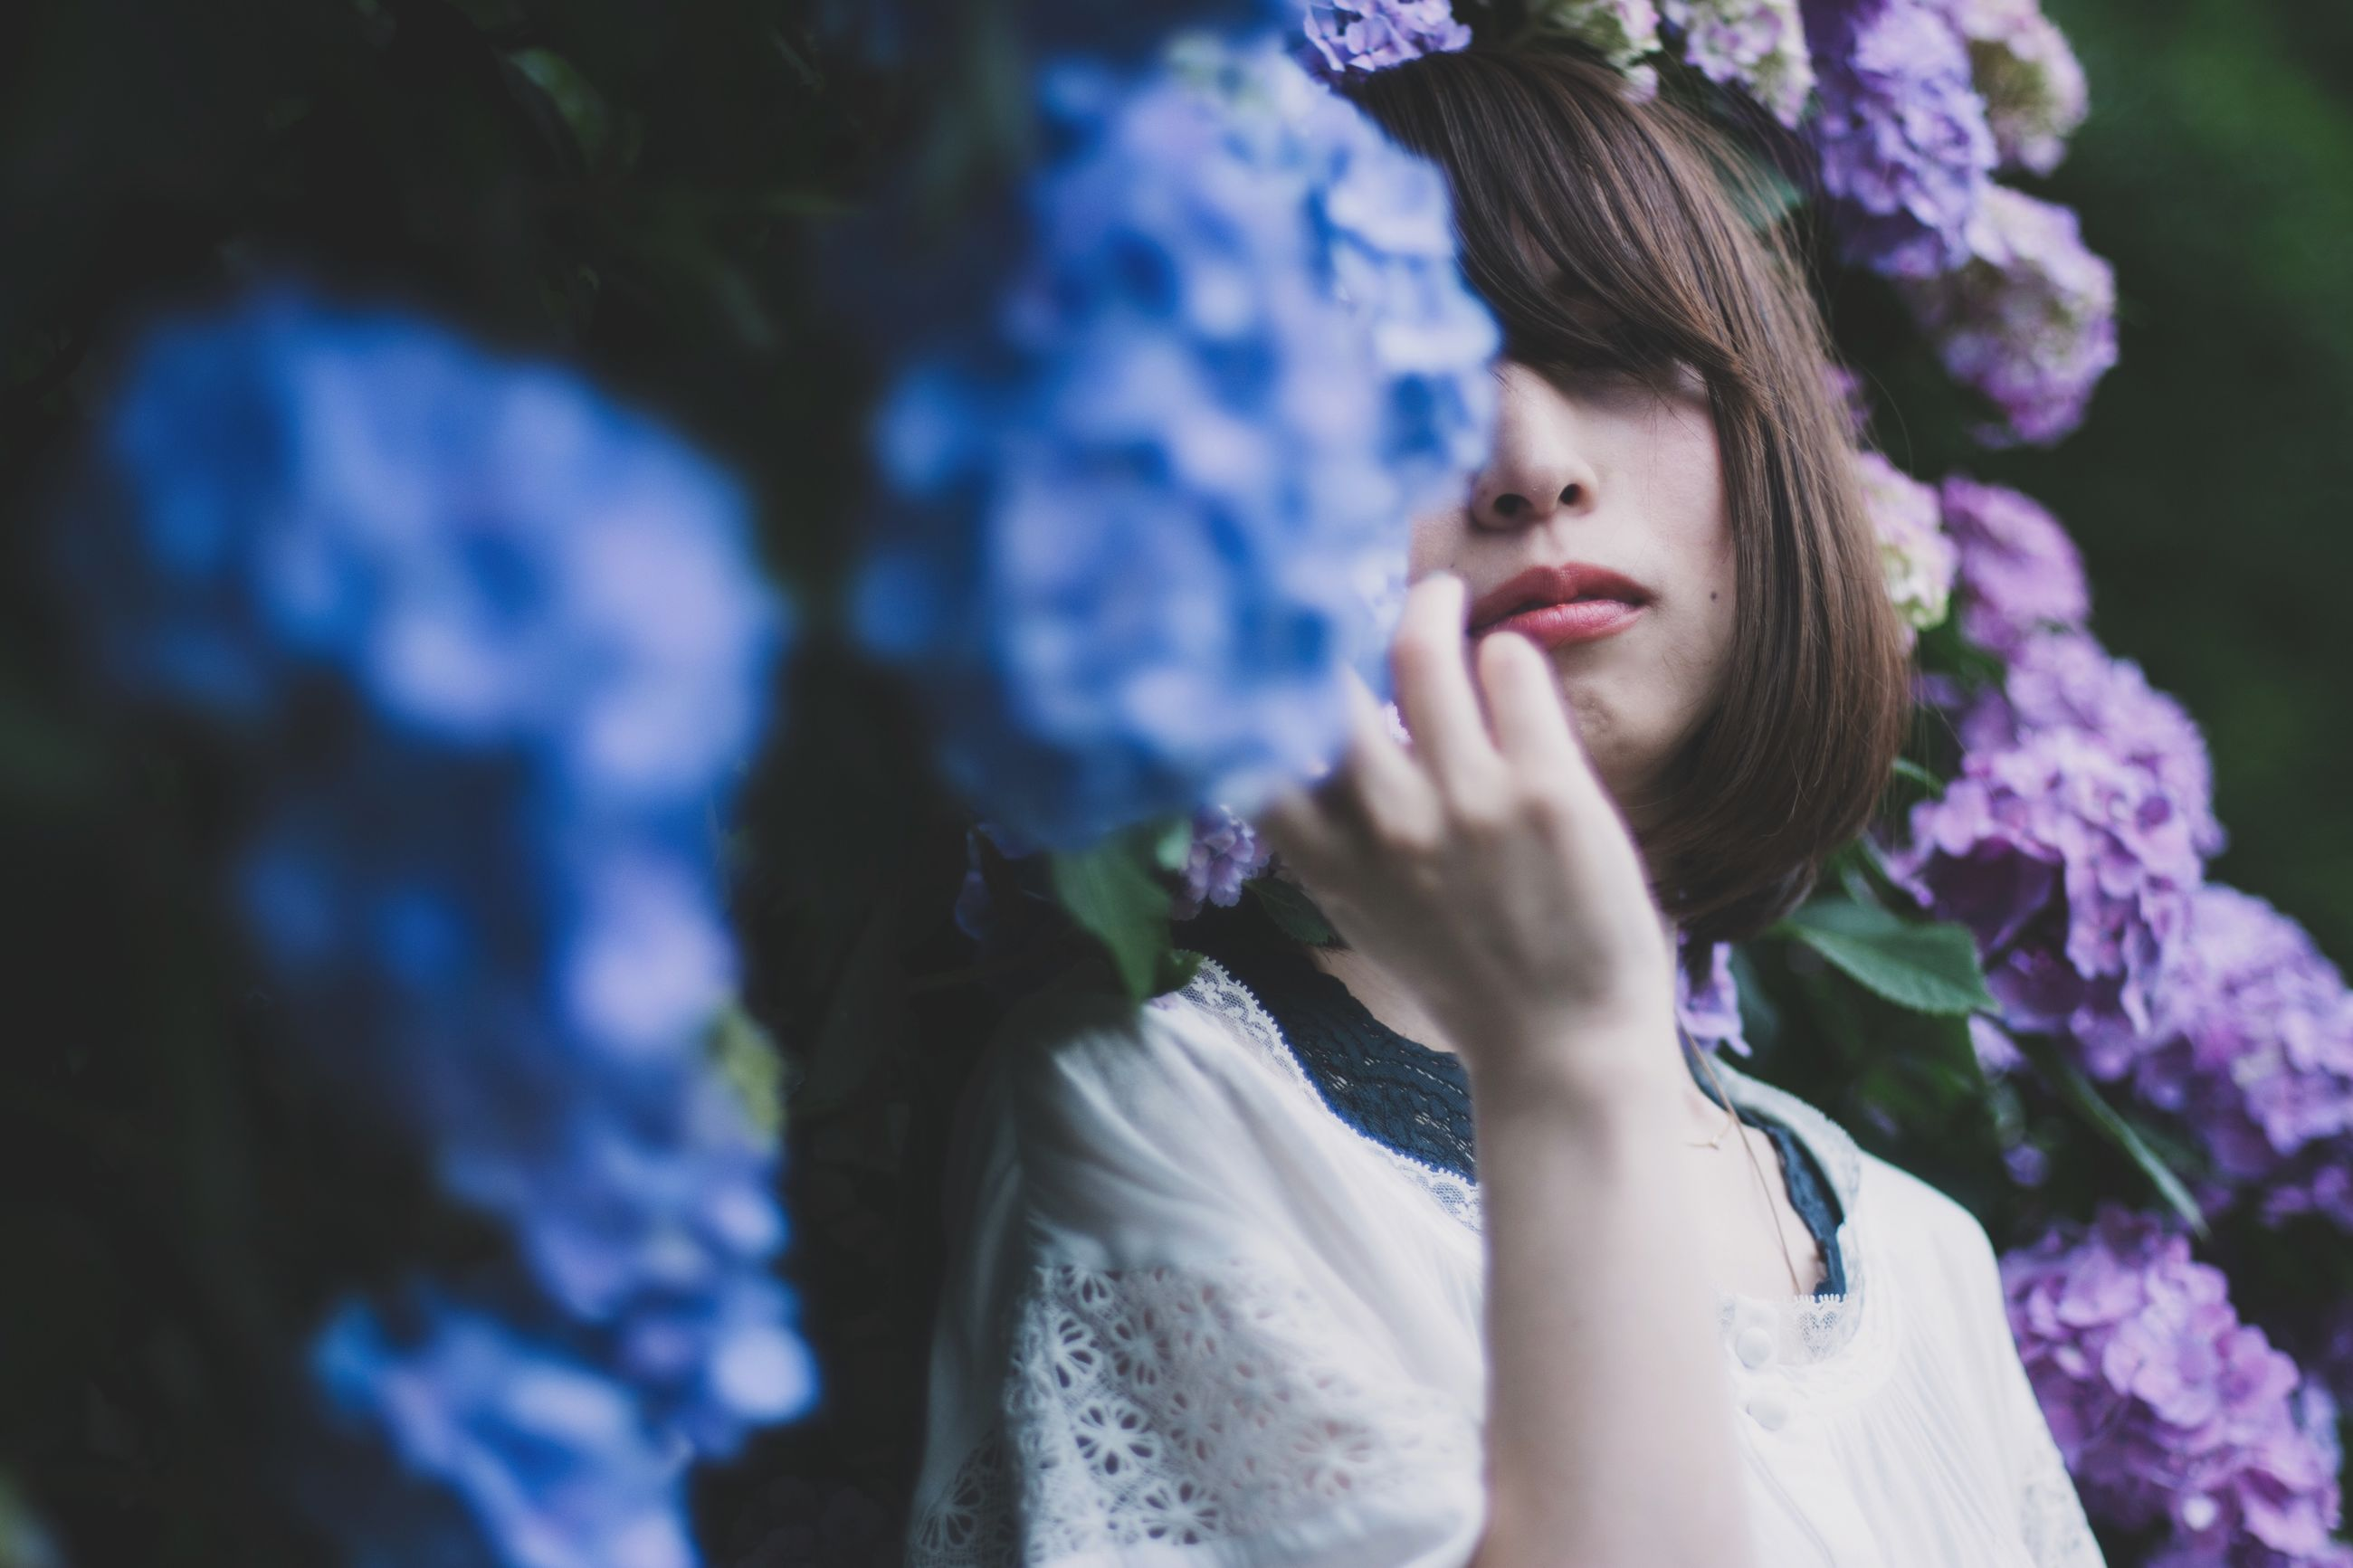 one person, young adult, real people, leisure activity, plant, young women, women, lifestyles, flower, headshot, selective focus, flowering plant, portrait, day, adult, looking, nature, front view, outdoors, beautiful woman, purple